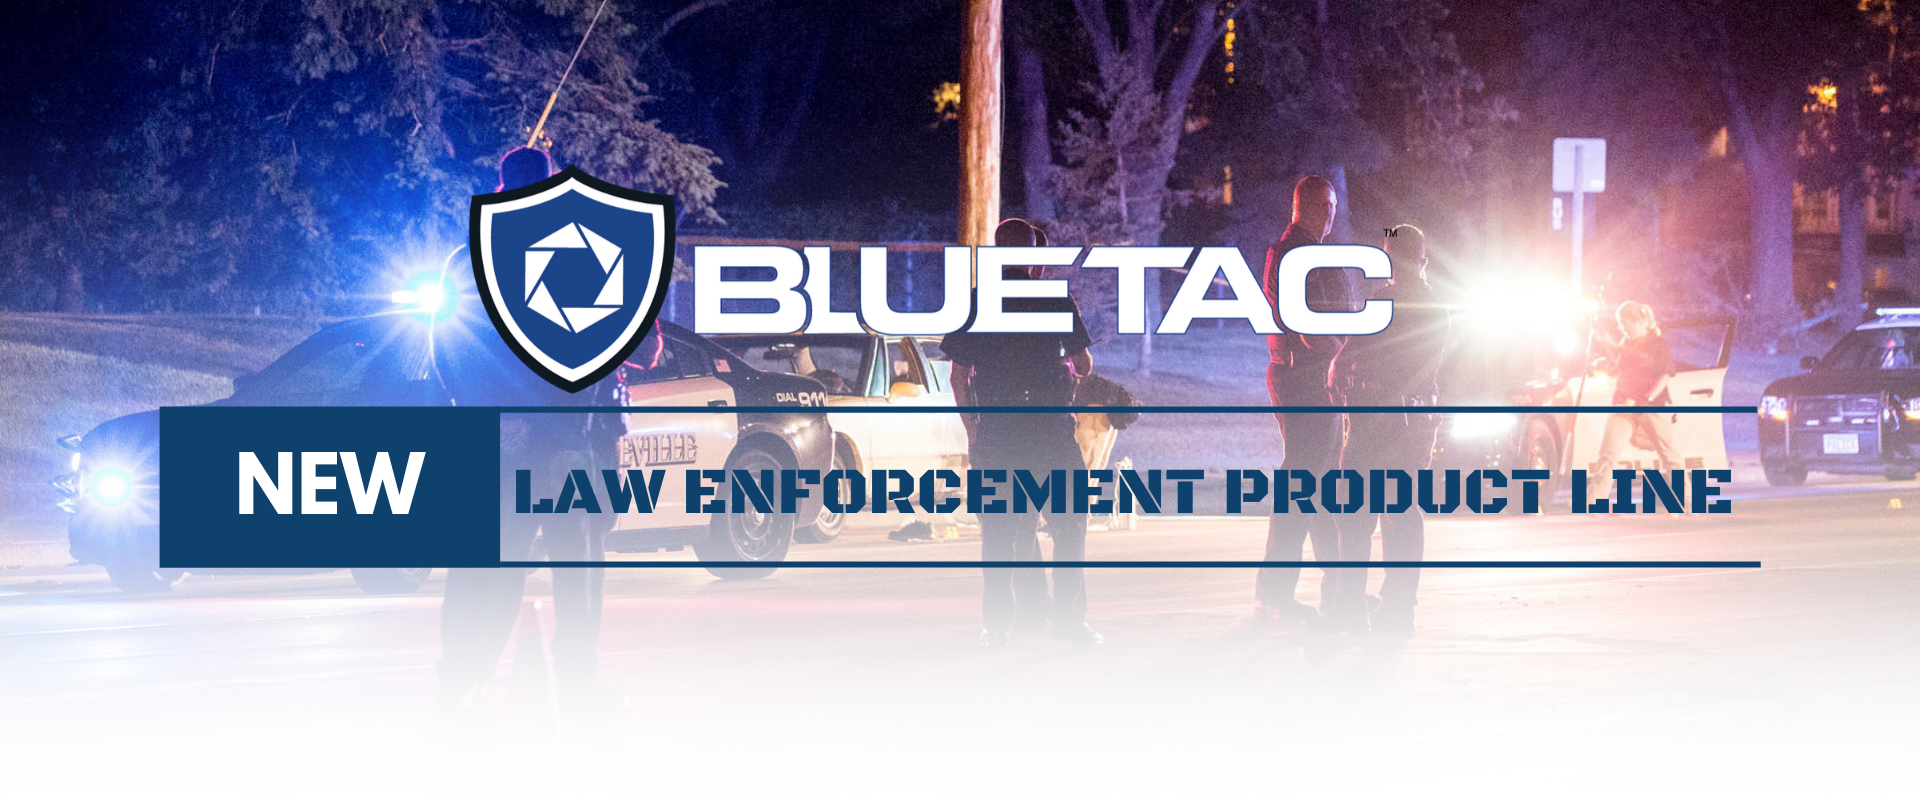 BlueTac New Law Enforcement Police Product Line _First Priority Group_FPG